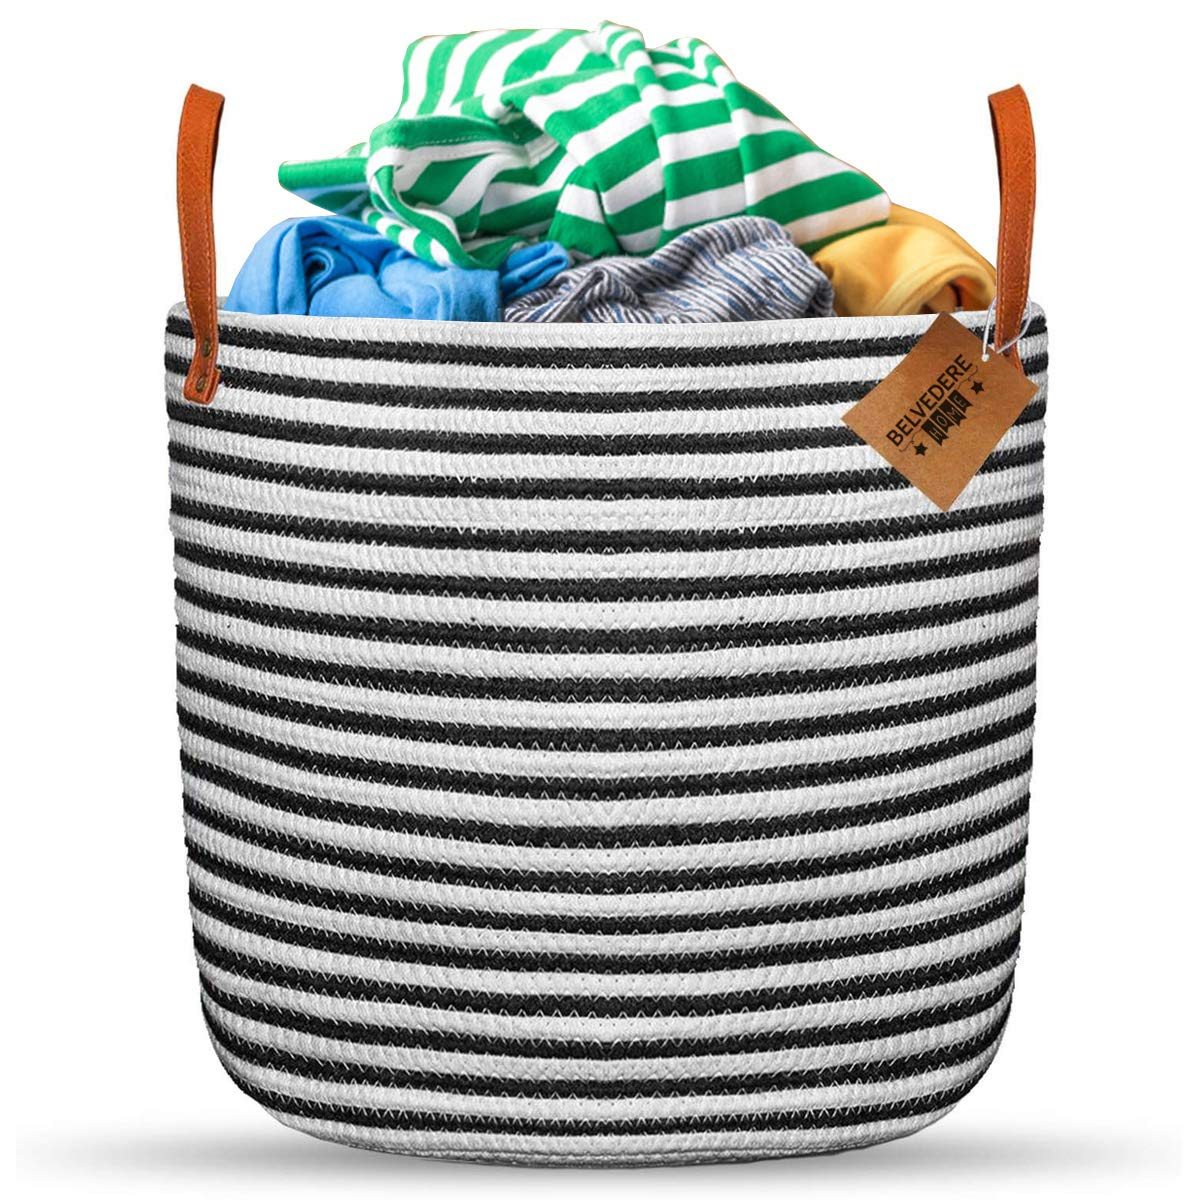 Extra LargeCotton Laundry Basket and Toy Bin Organizer with Leather Handles; Chic Natural Woven Rope Storage Container for Laundry, Toys, Blankets and Everyday use.